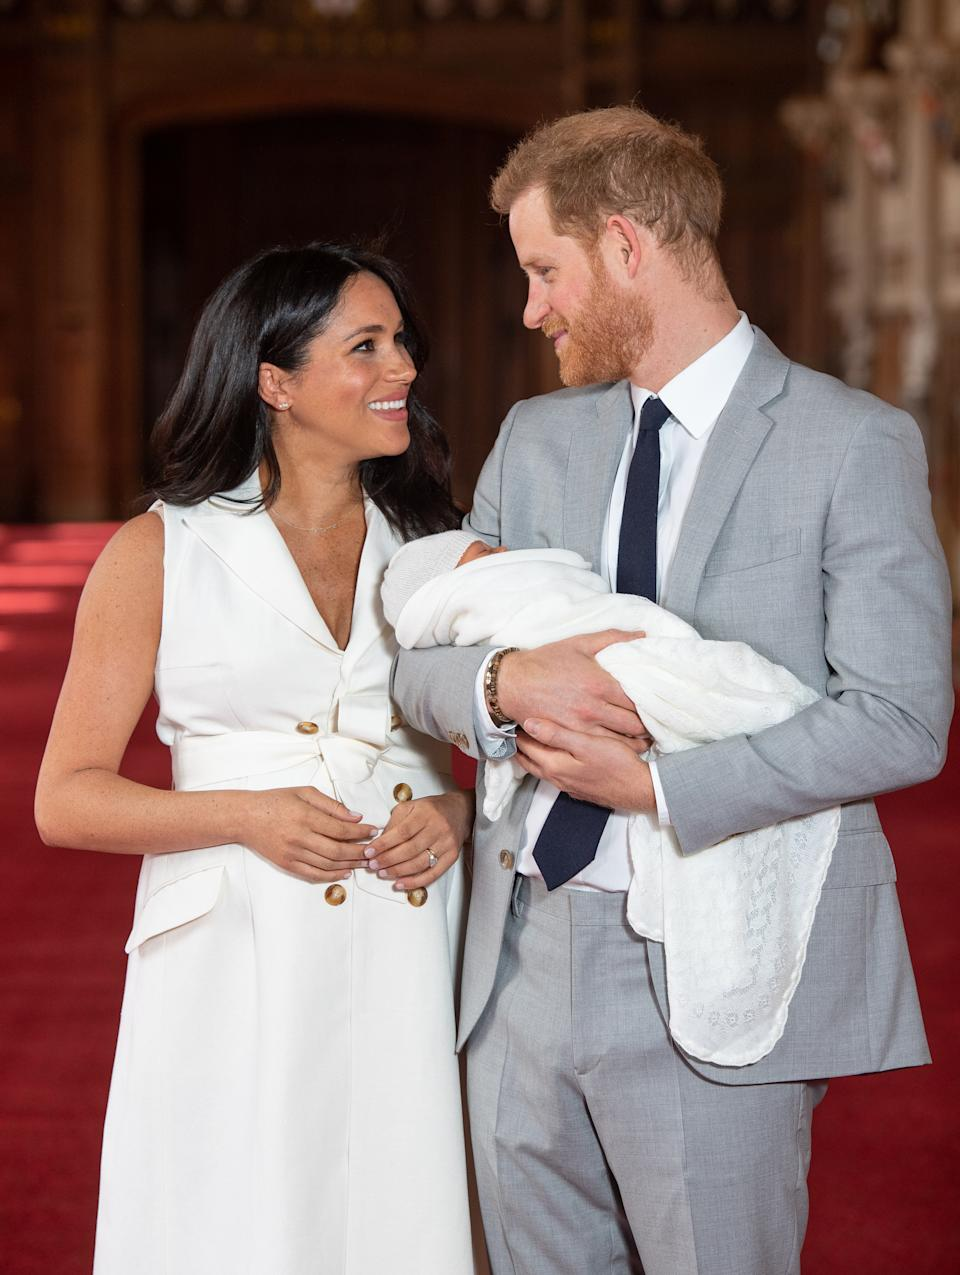 Harry and Meghan have attempted to shield Archie from the press as much as possible since he was born. Photo: Getty